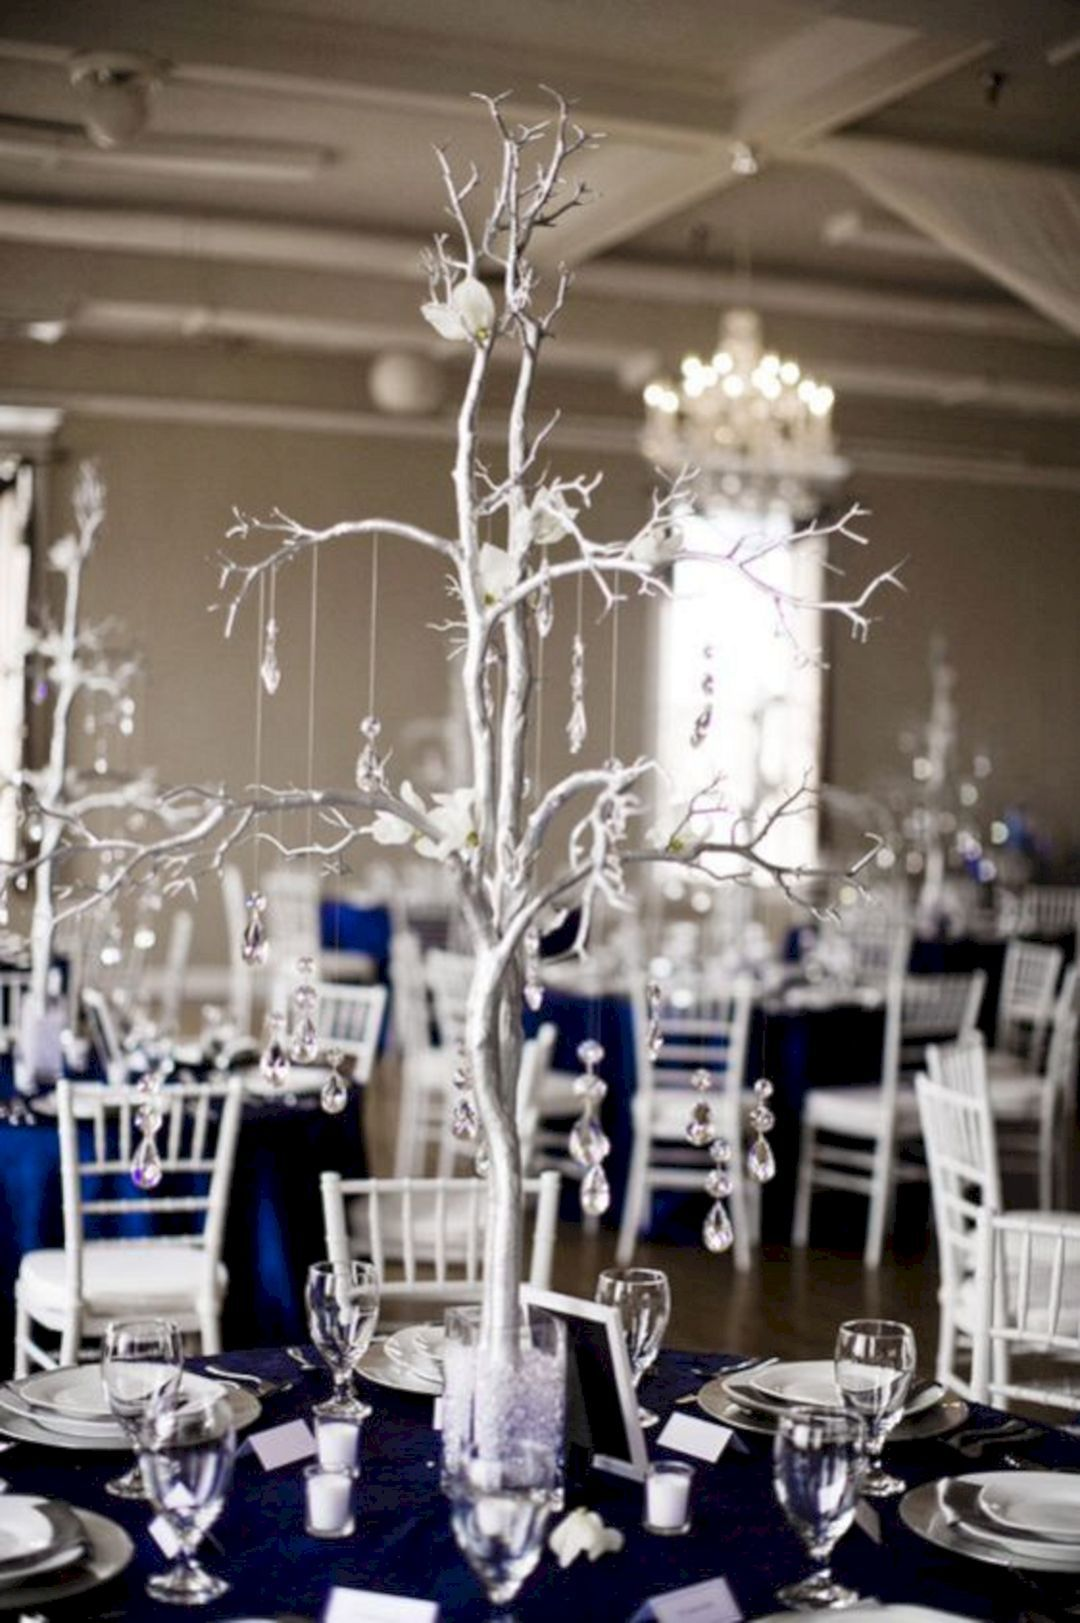 25 elegant blue and silver wedding decorations ideas for wedding best 25 elegant blue and silver wedding decorations ideas for wedding decor perfectly https junglespirit Choice Image